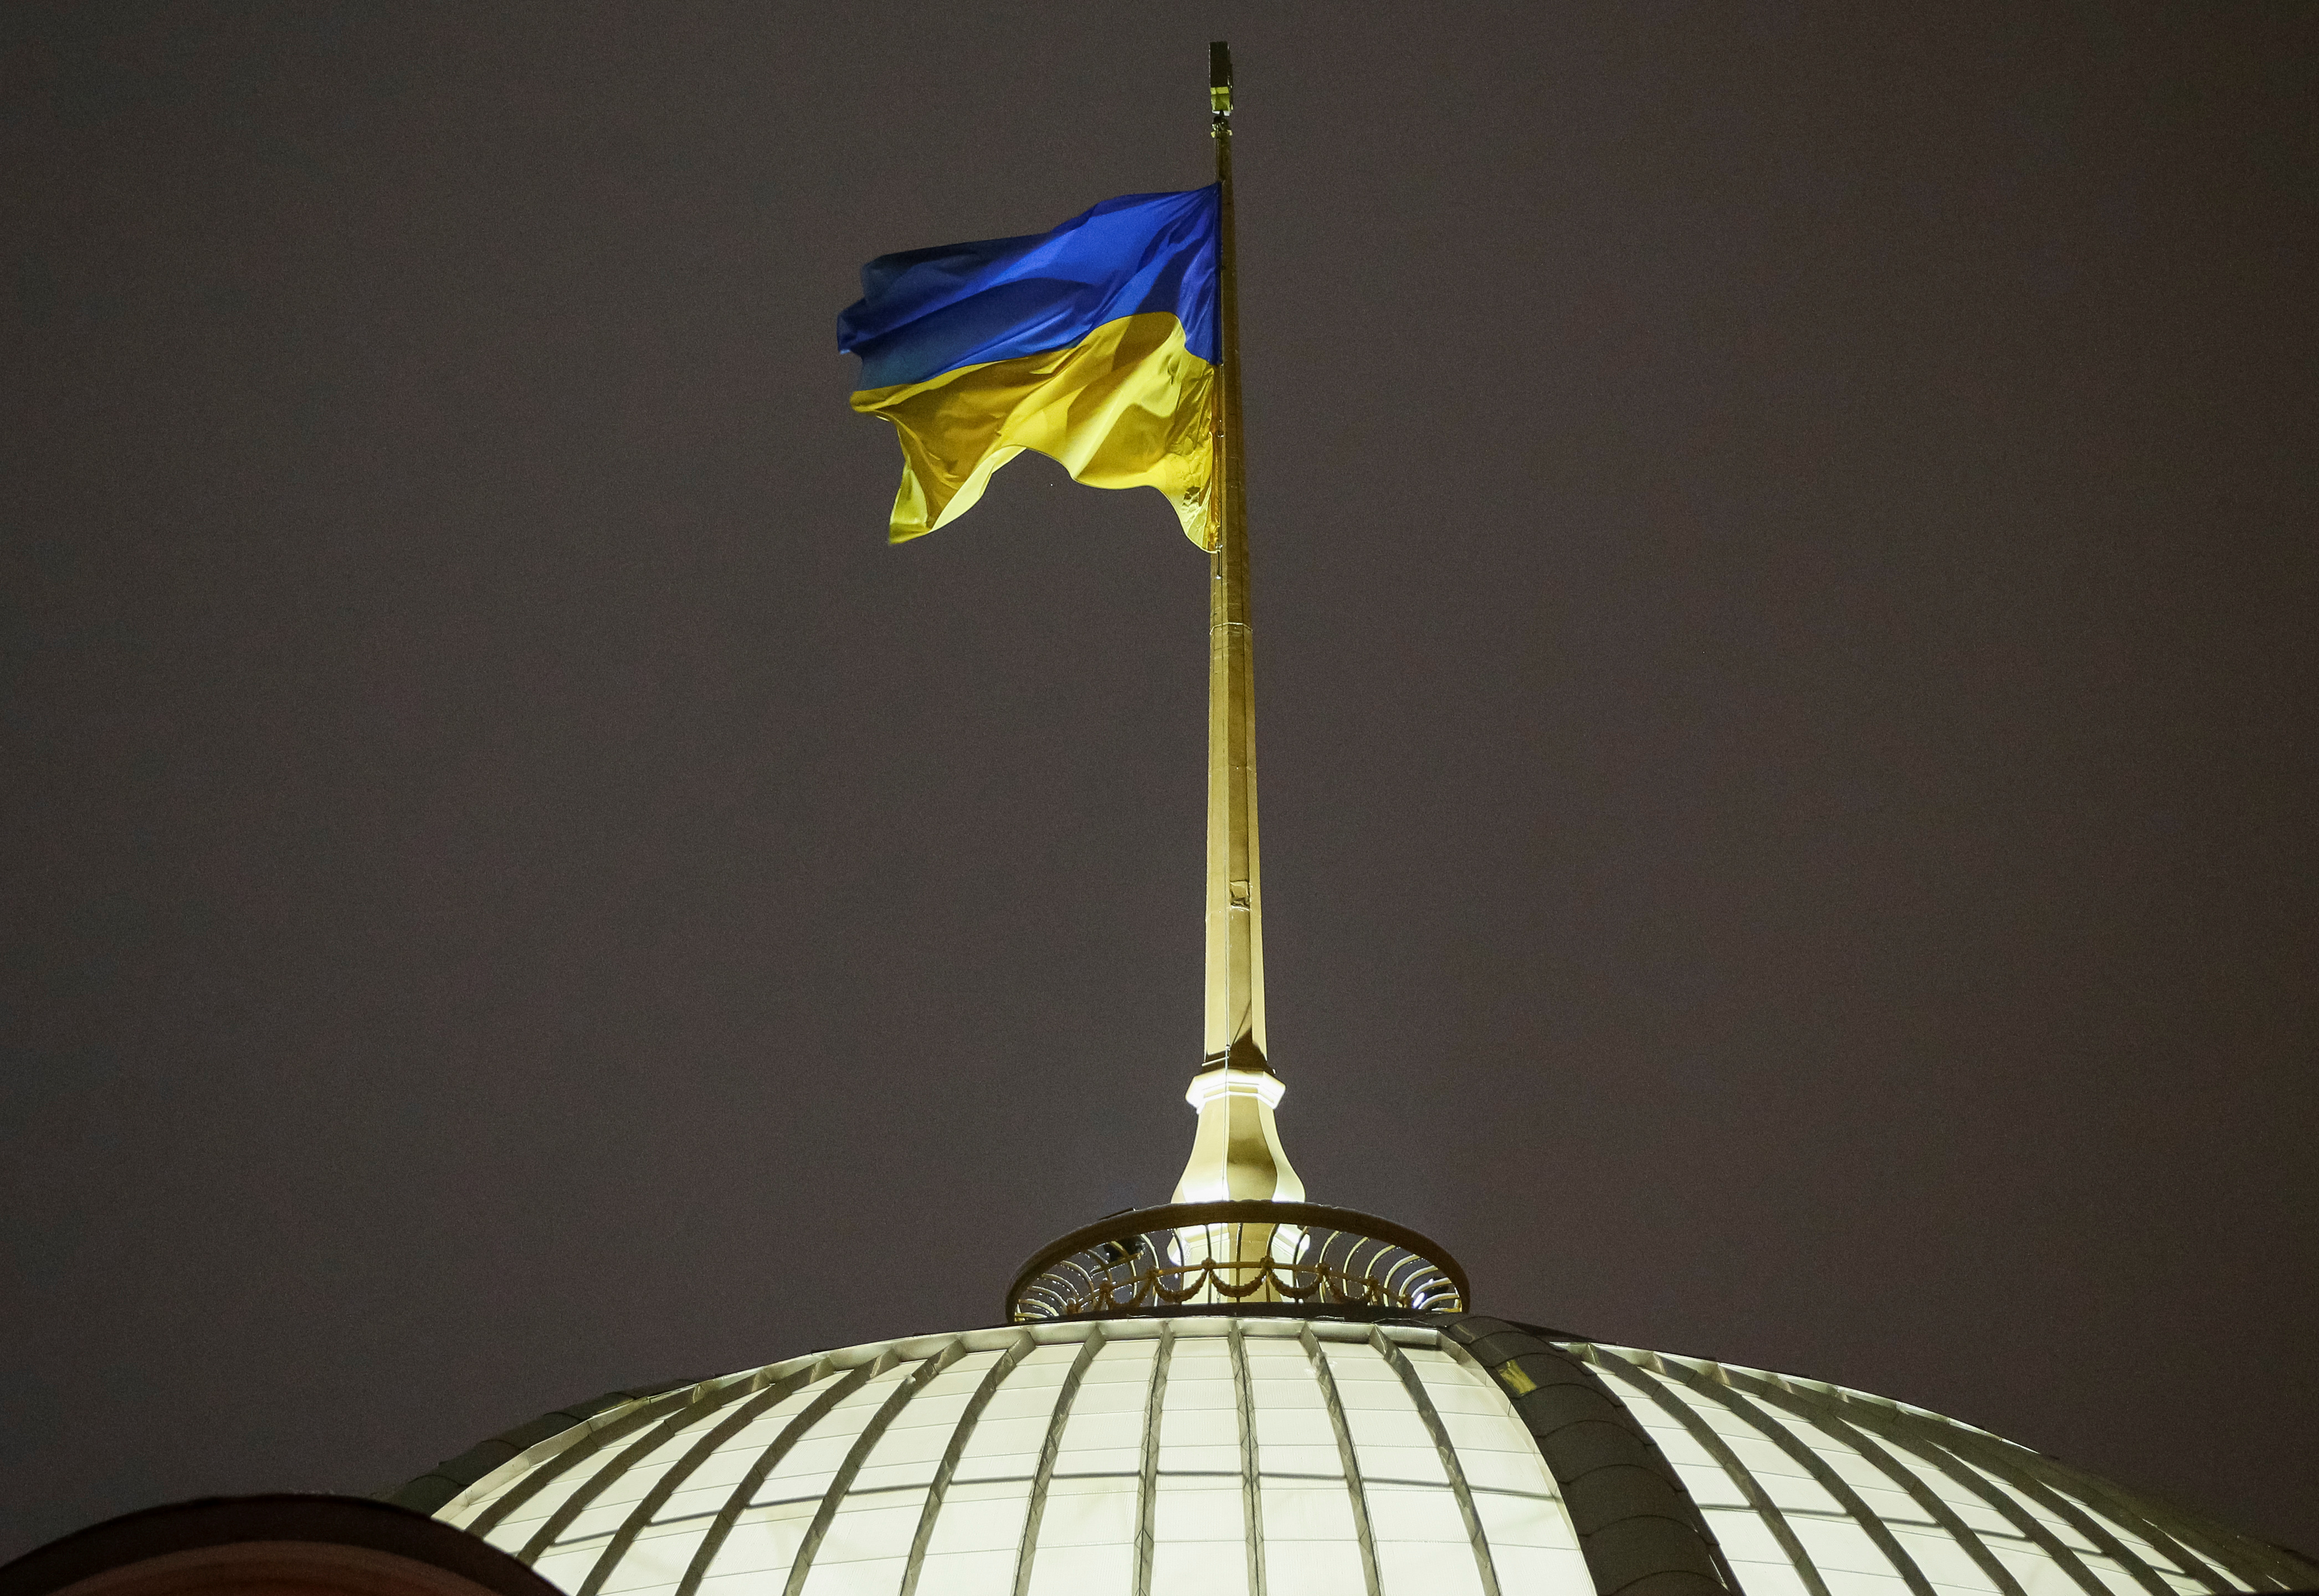 25 Years After Ukraine Denuclearized Russian Aggression Continues